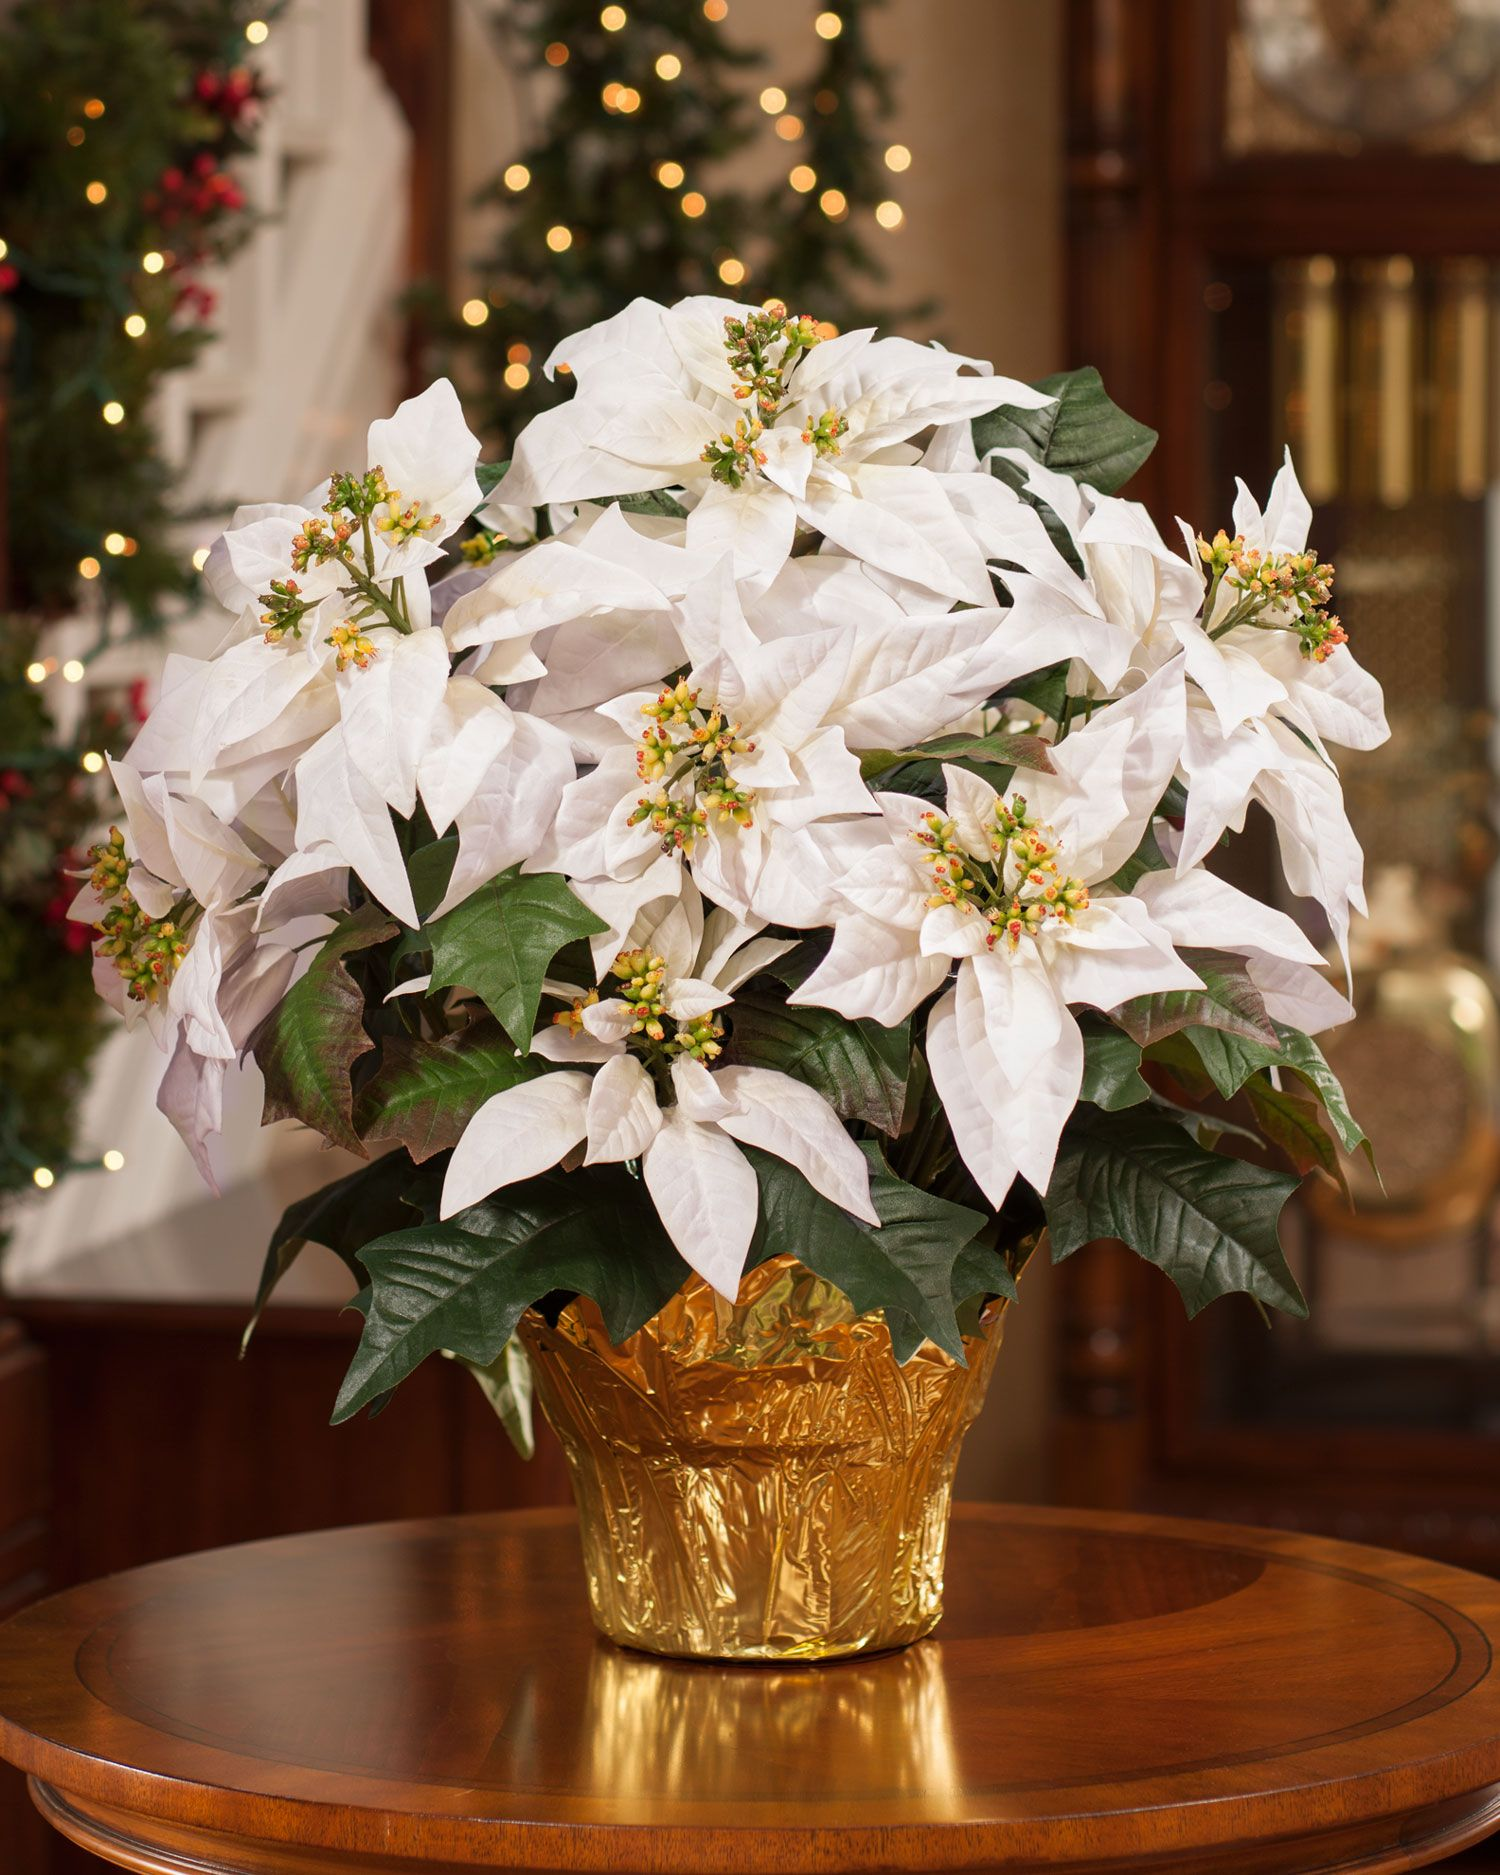 Pictures Of White Poinsettias - Garden Inspiration